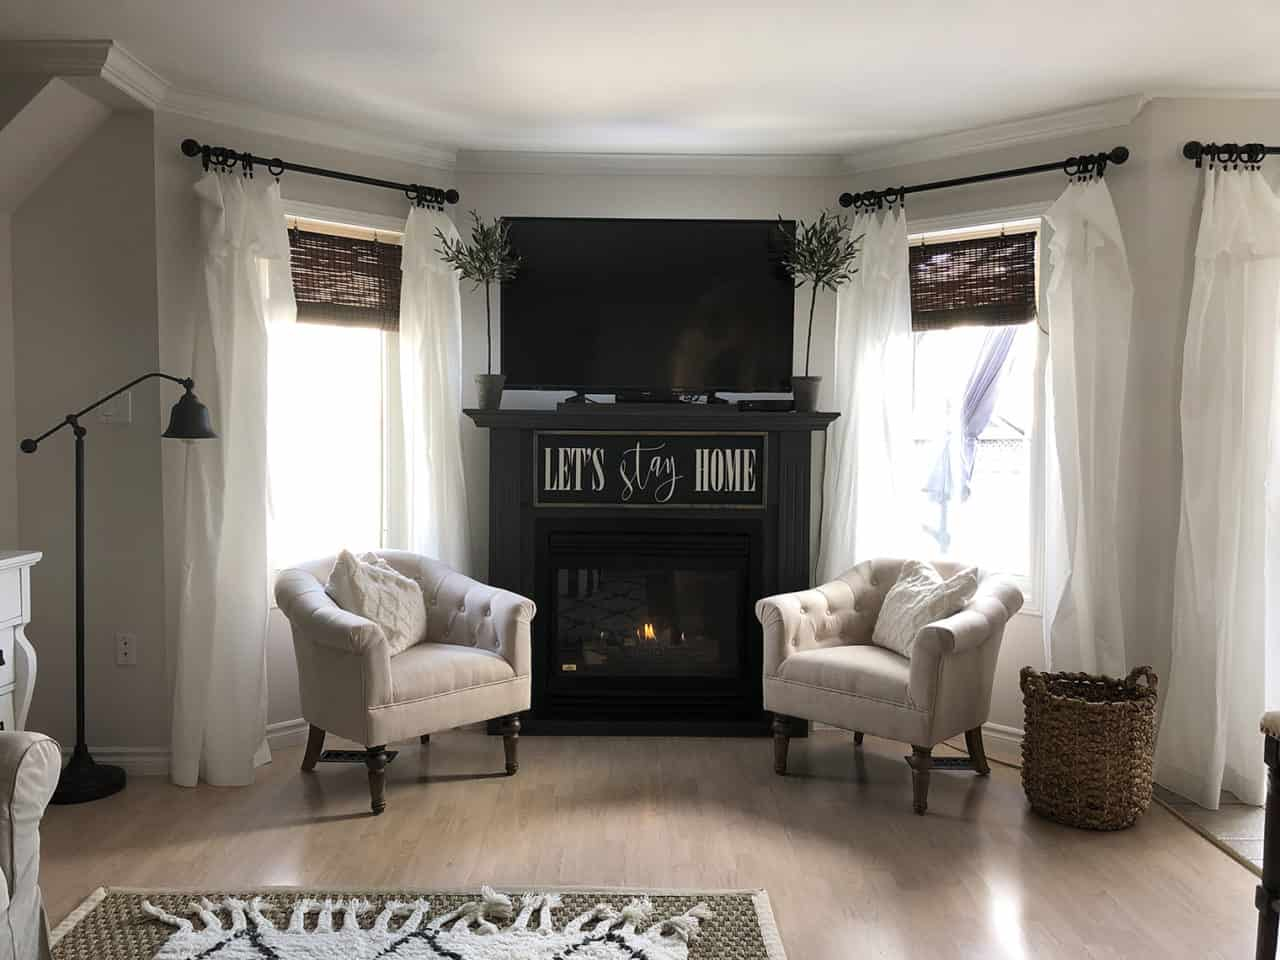 Lordana Barrel Chairs by fireplace day